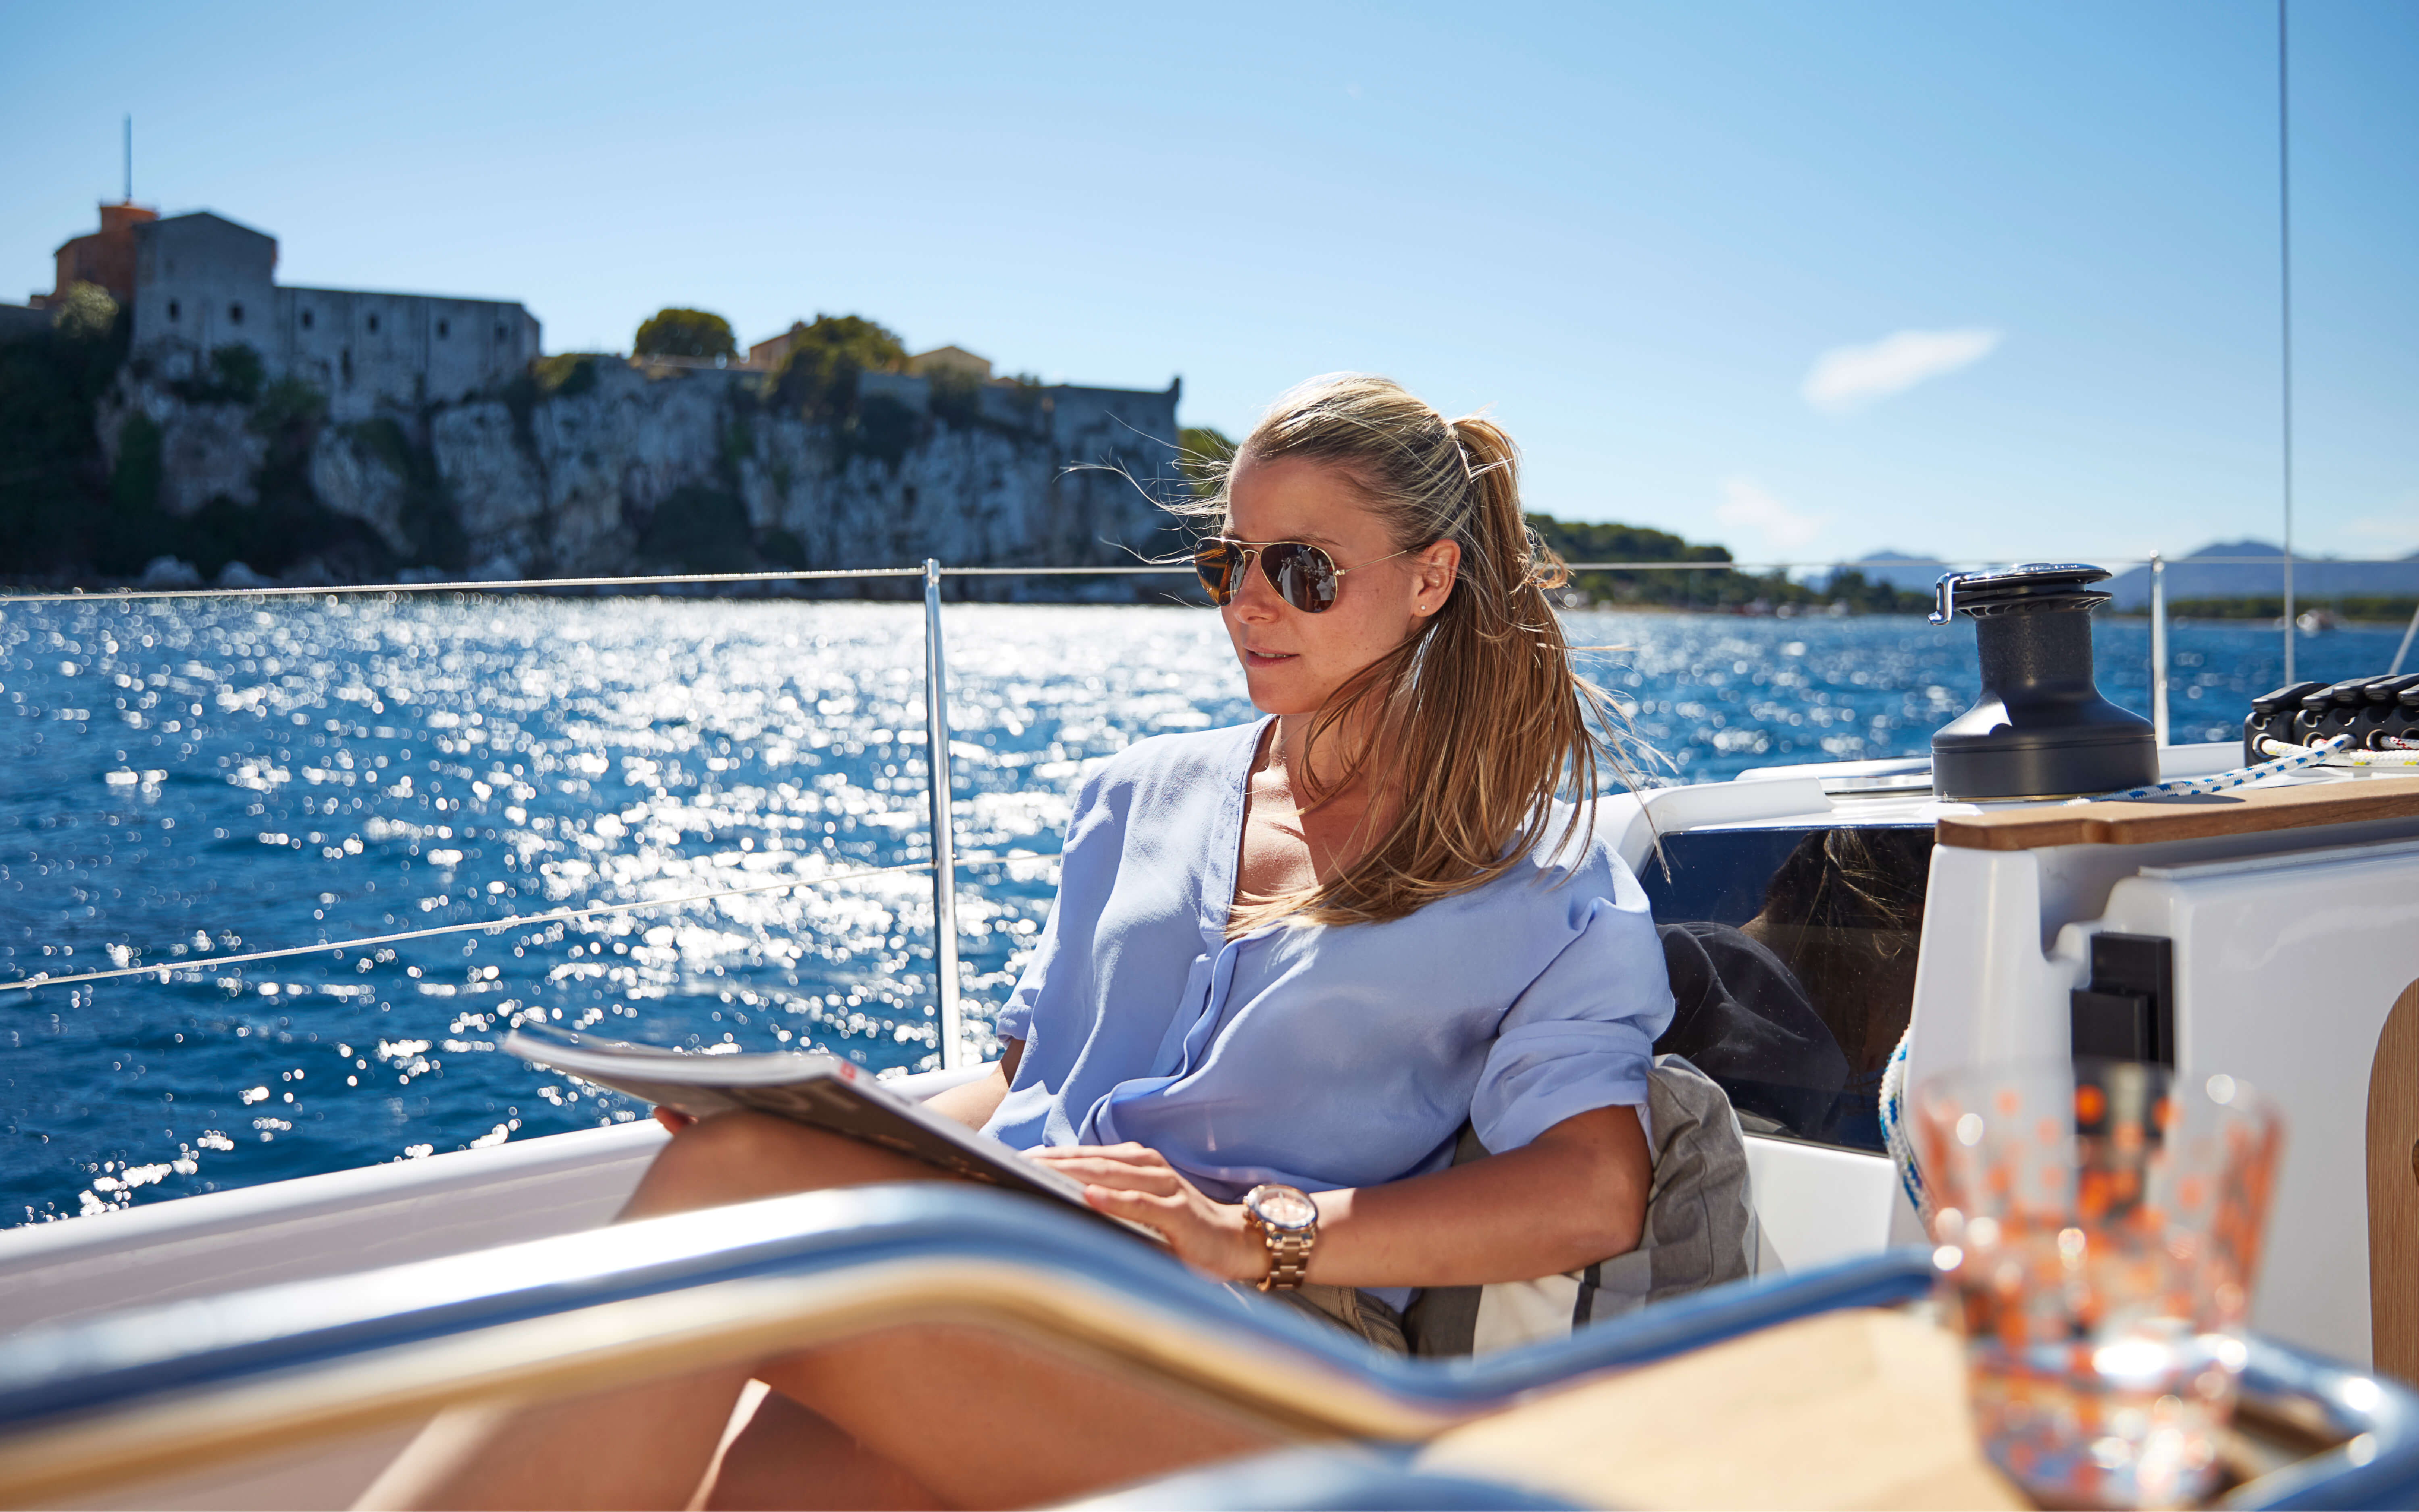 Hanse 315 | HANSE yachts amaze with their modern, functional design. Unique, puristic elegance meets exceptional performance from the pen of judel/vrolijk & co, the world's best and most experienced yacht designers. | Hanse